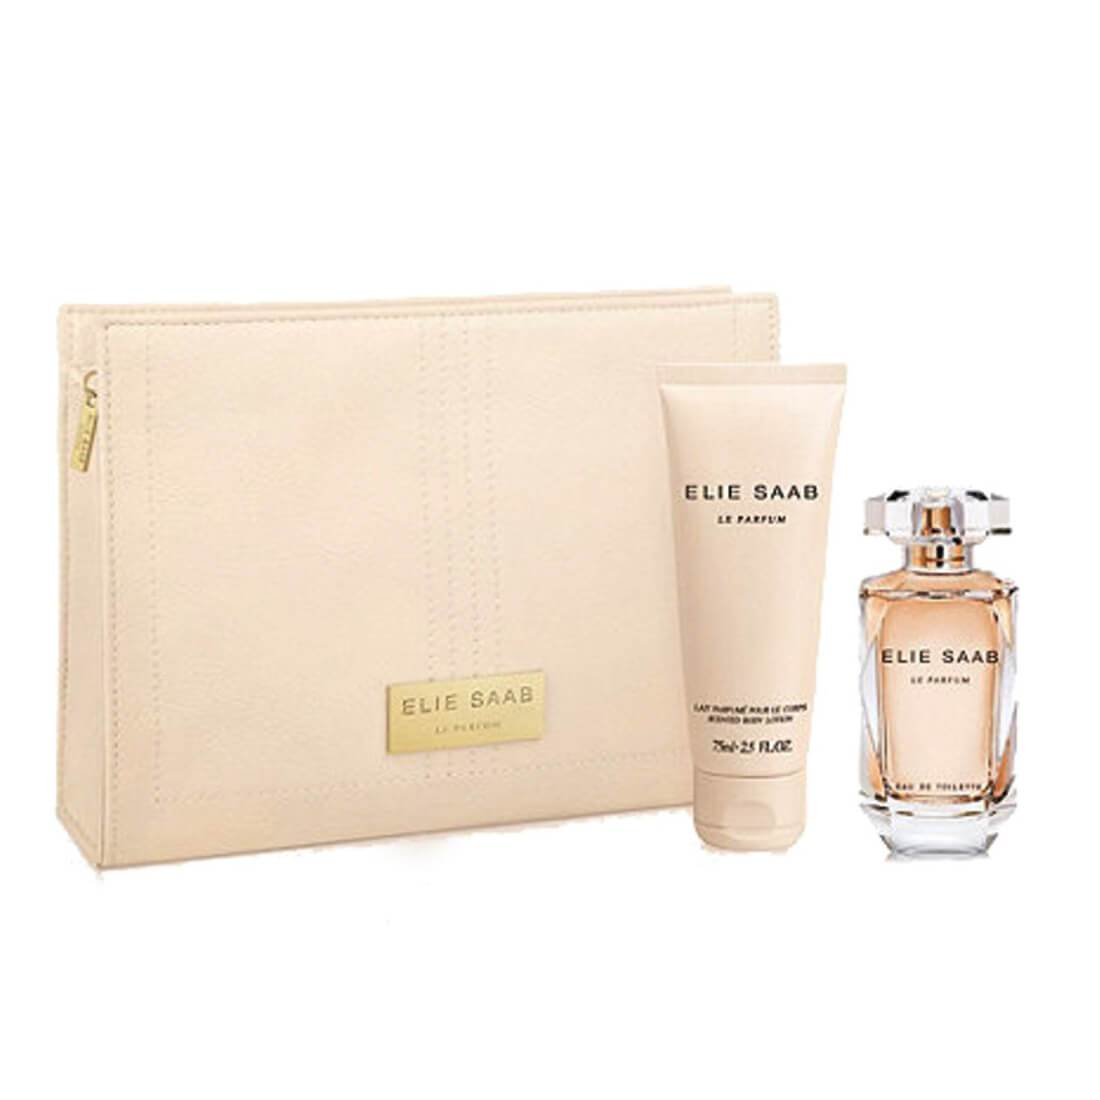 Elie Saab Le Parfum Gift Set Pack Of 2